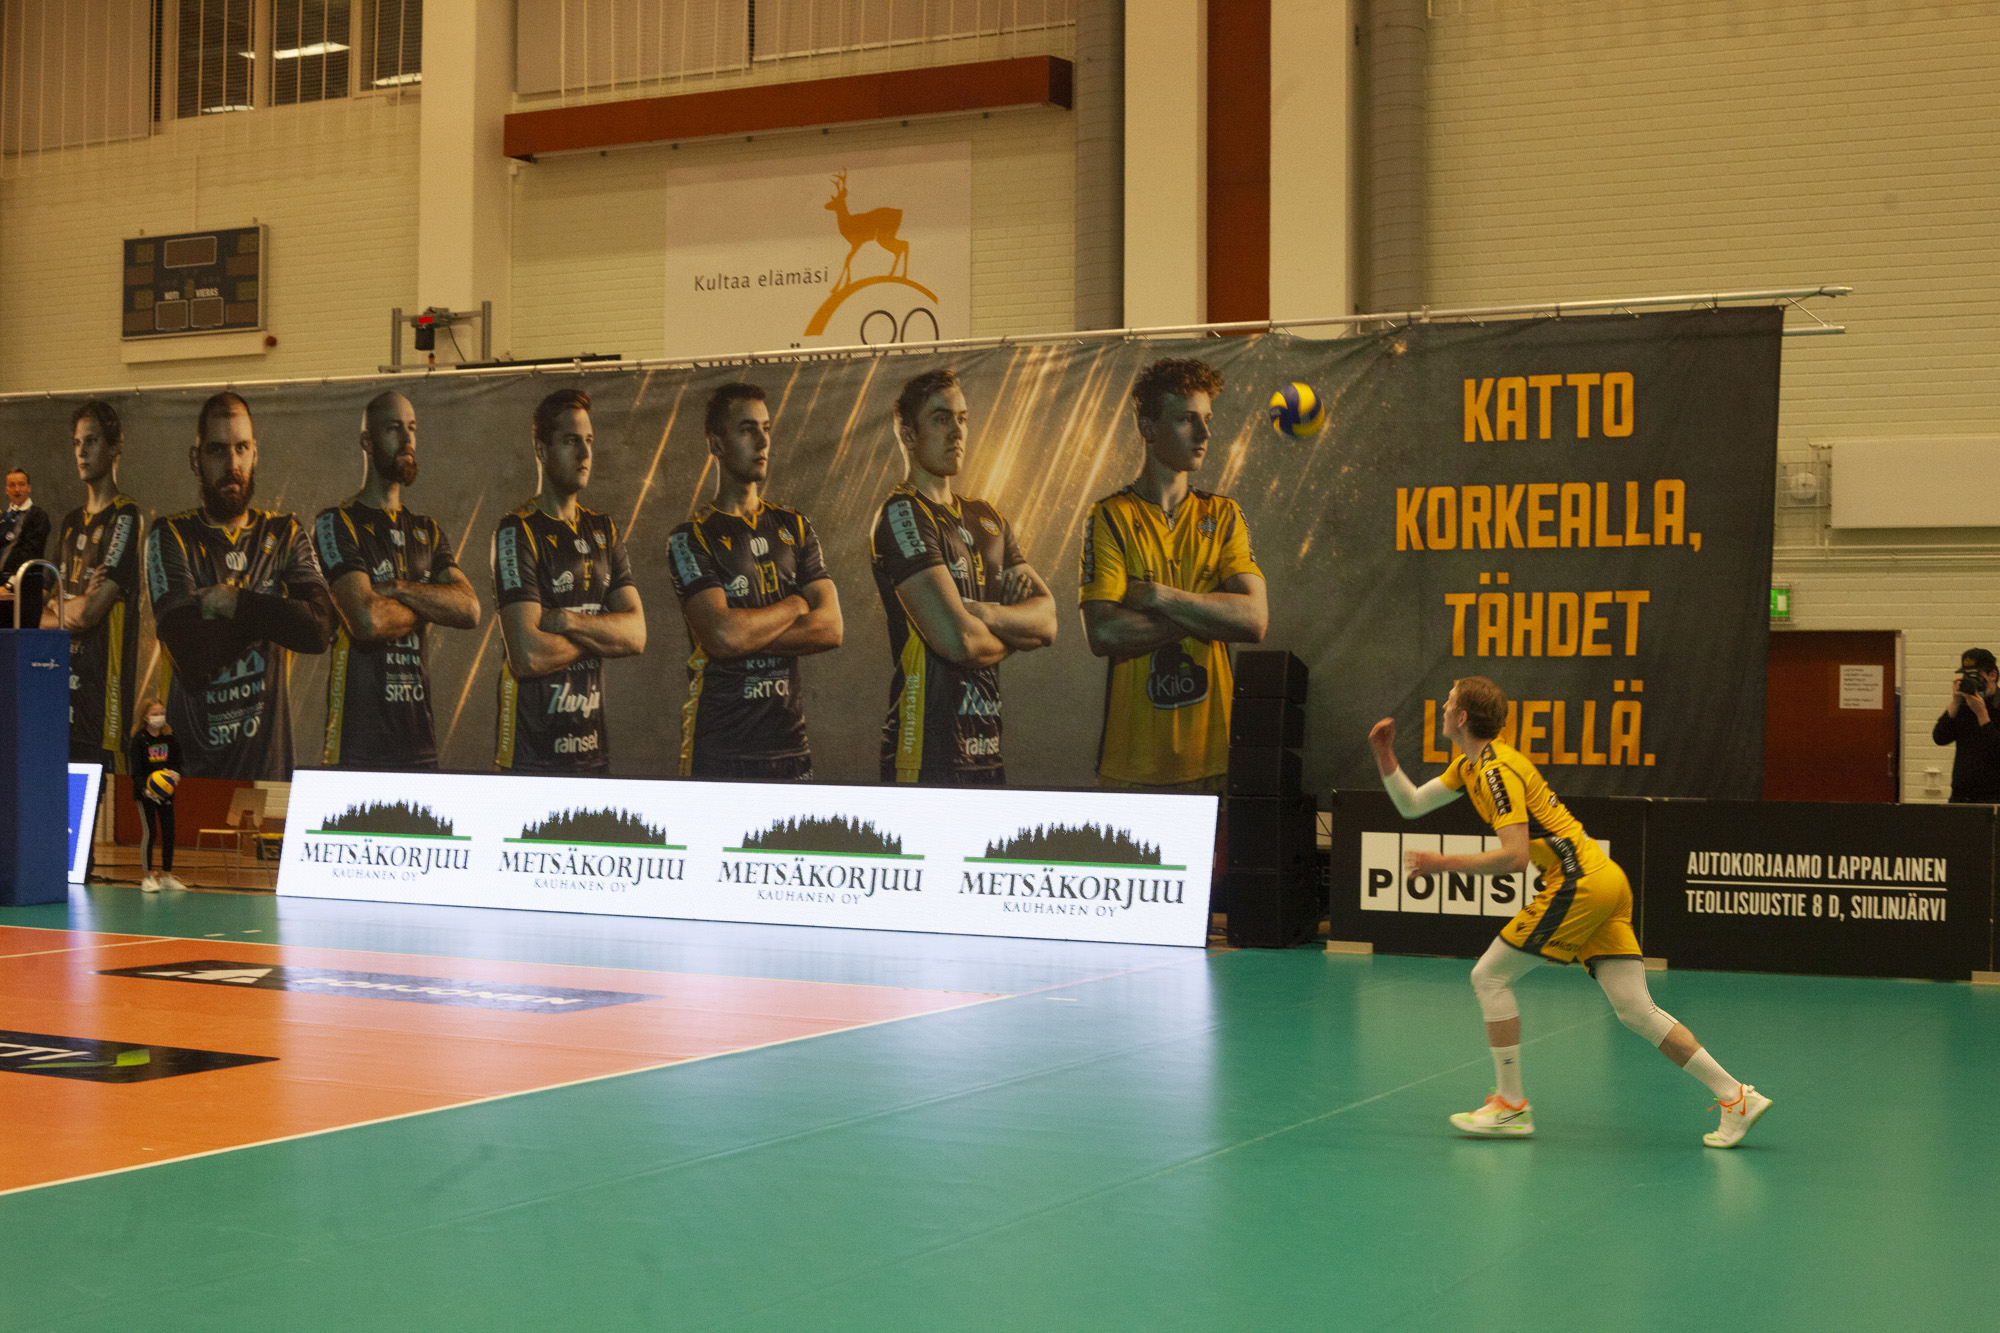 Akaa-Volley - Savo Volley -ottelu on siirretty